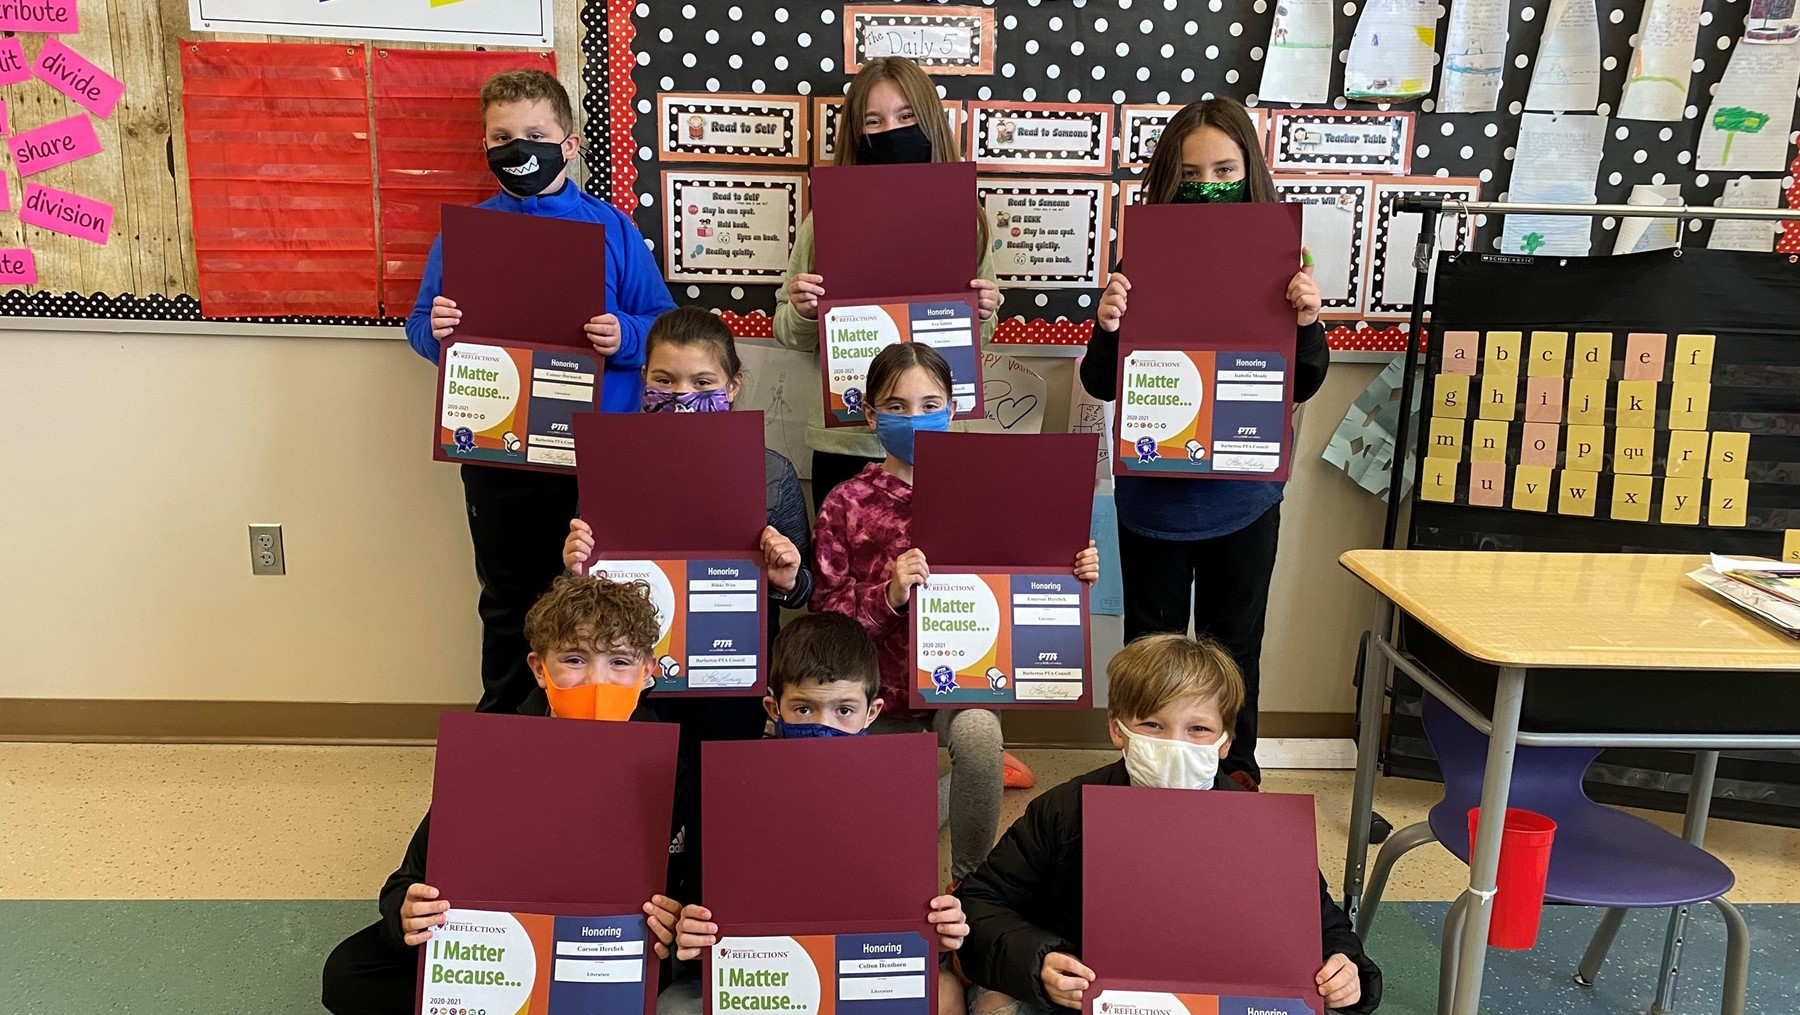 Ms. Vinays 3rd grade class at Barberton Elementary East participated in the PTA Reflections literature contest.